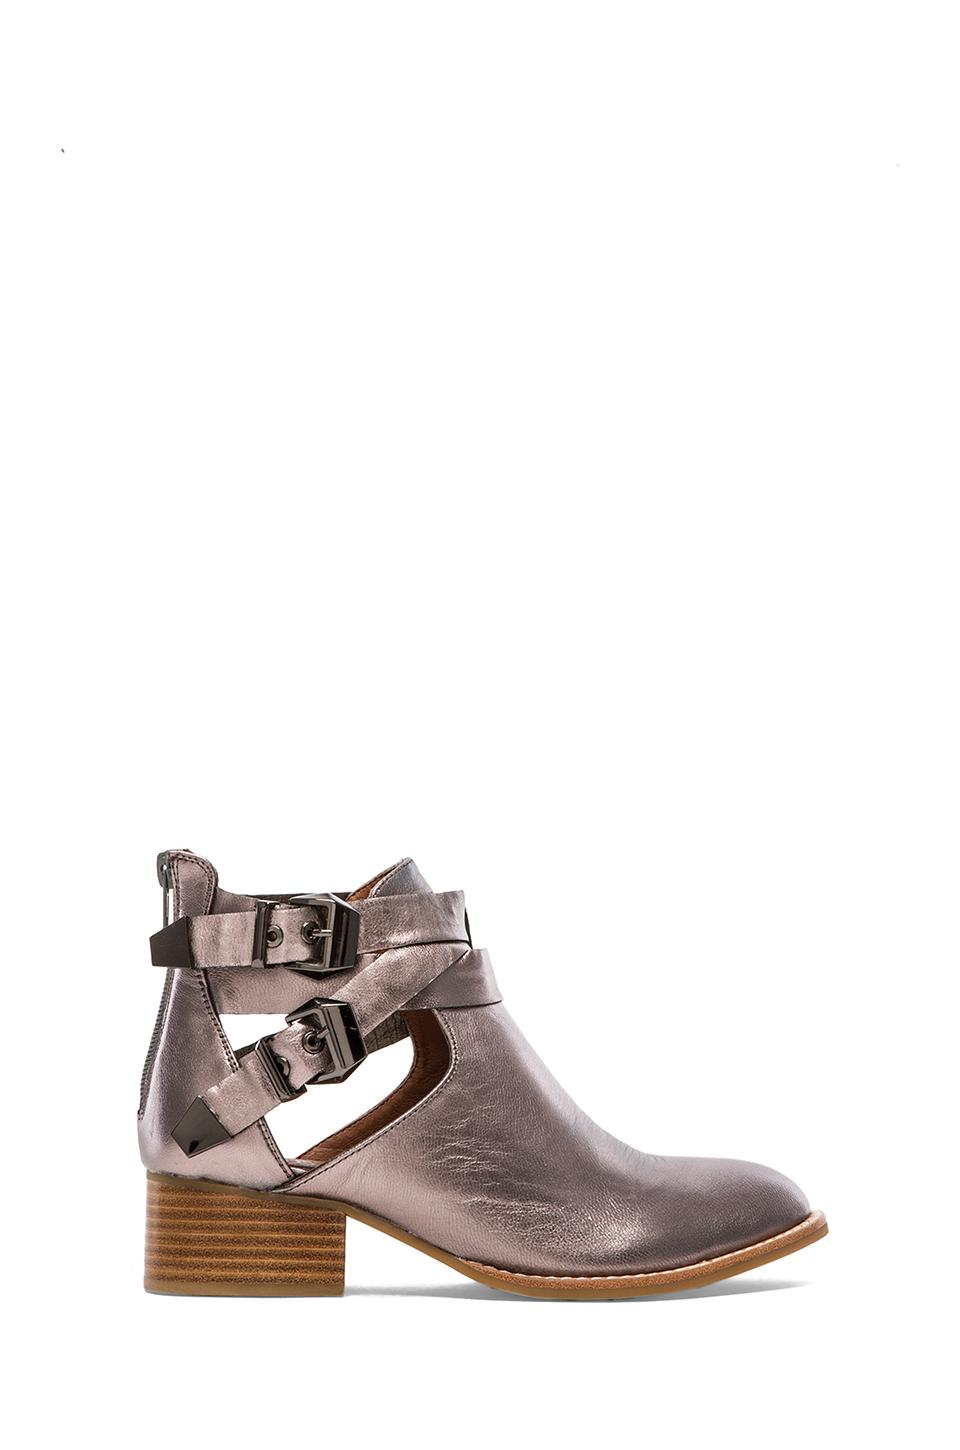 Jeffrey Campbell Everly Bootie in Pewter